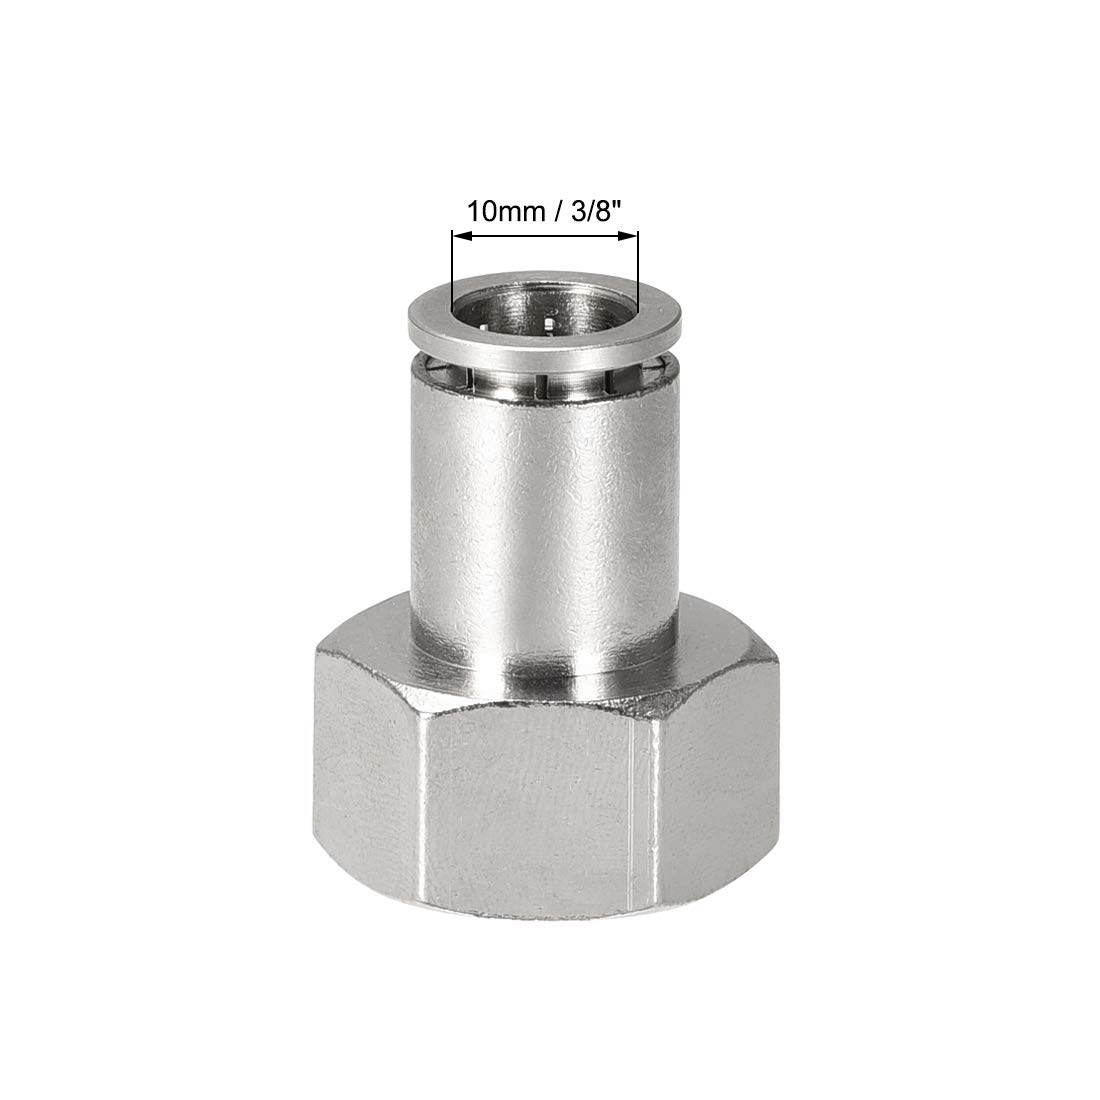 uxcell Push to Connect Tube Fittings 10mm Tube OD x 1//2 PT Female Straight Pneumatic Connecter Pipe Fitting Silver Tone